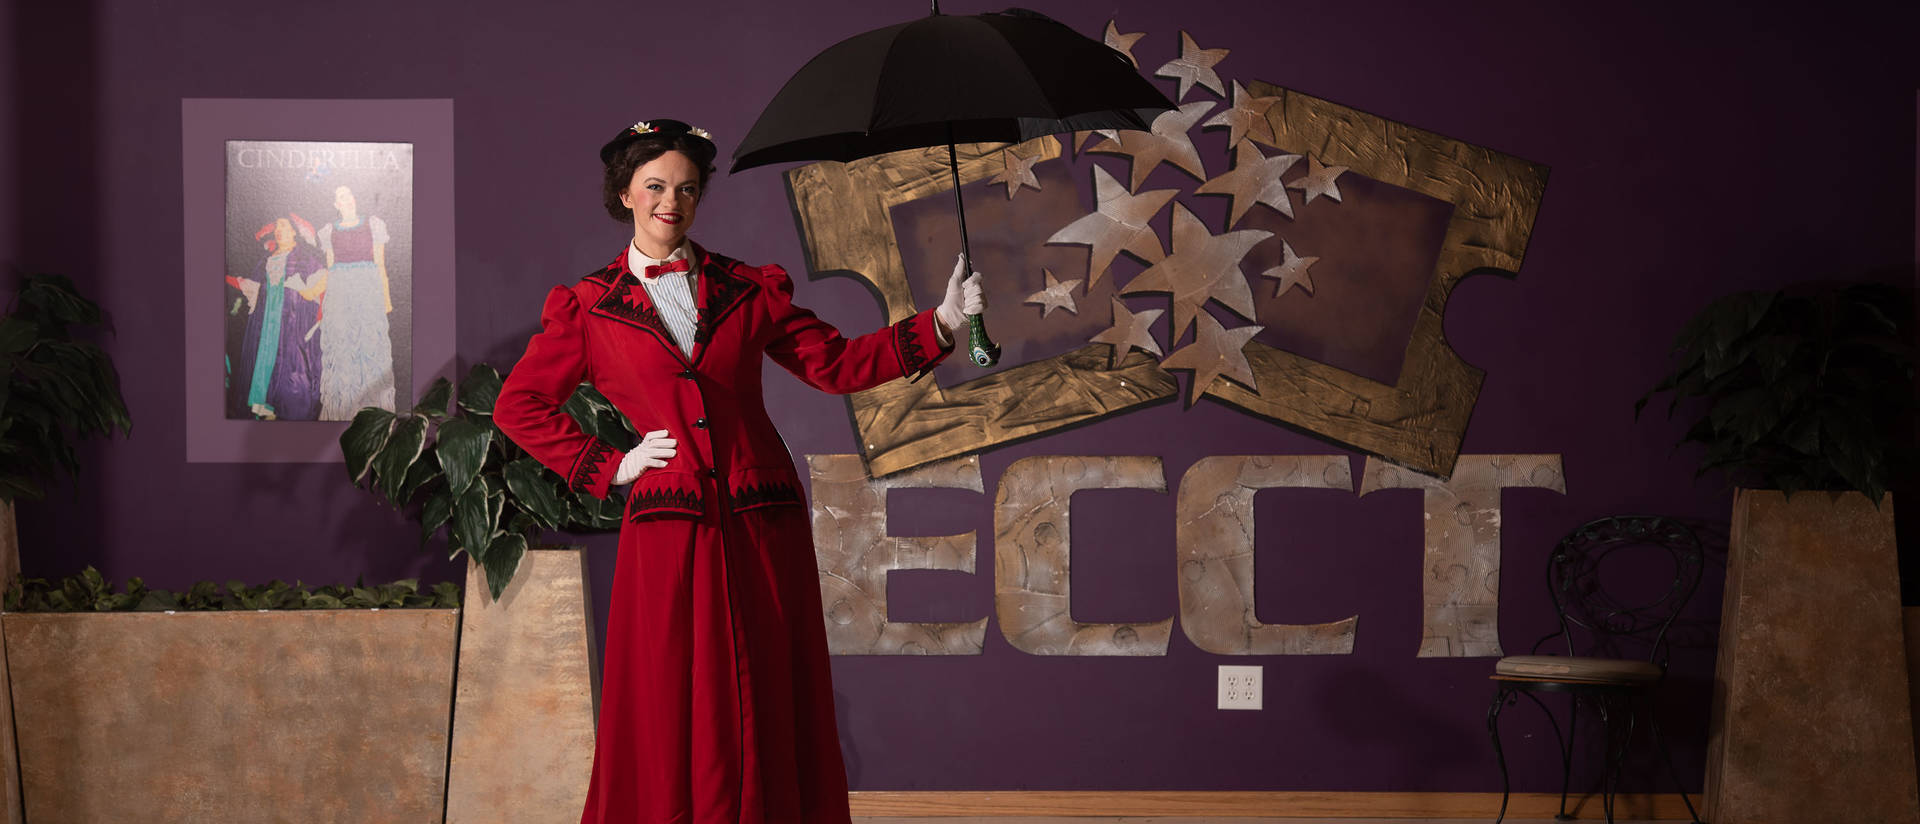 Blugold Kathryn Flynn is playing Mary Poppins in a community production.